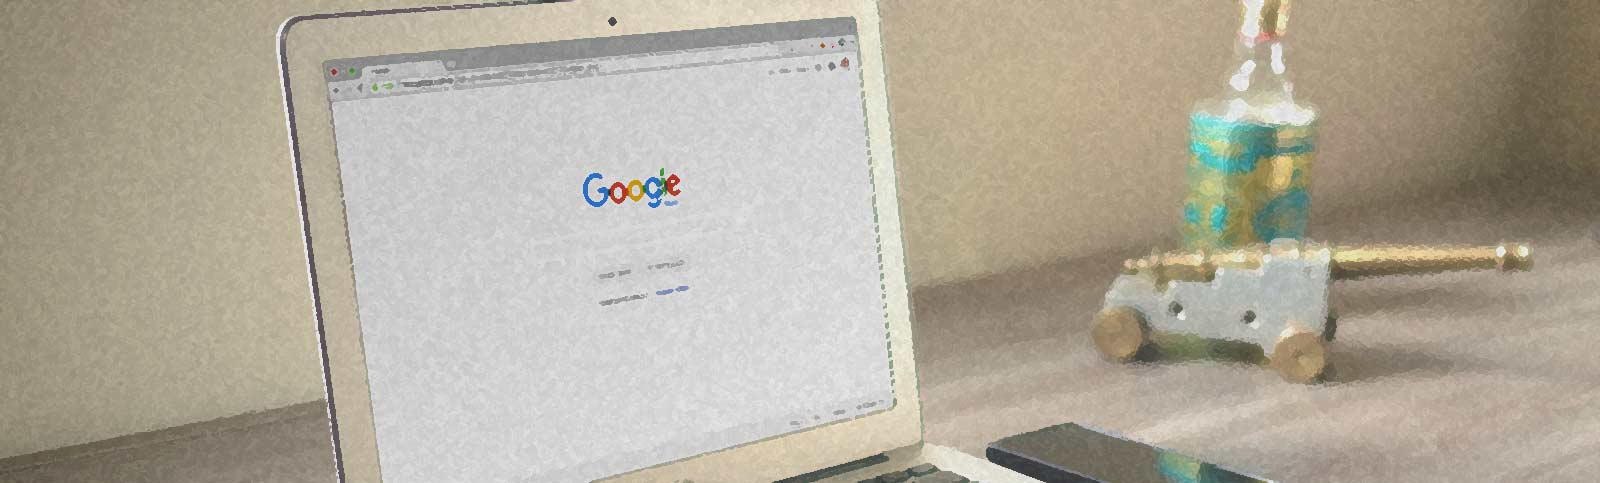 The Top Five Search Engines Used in Great Britain